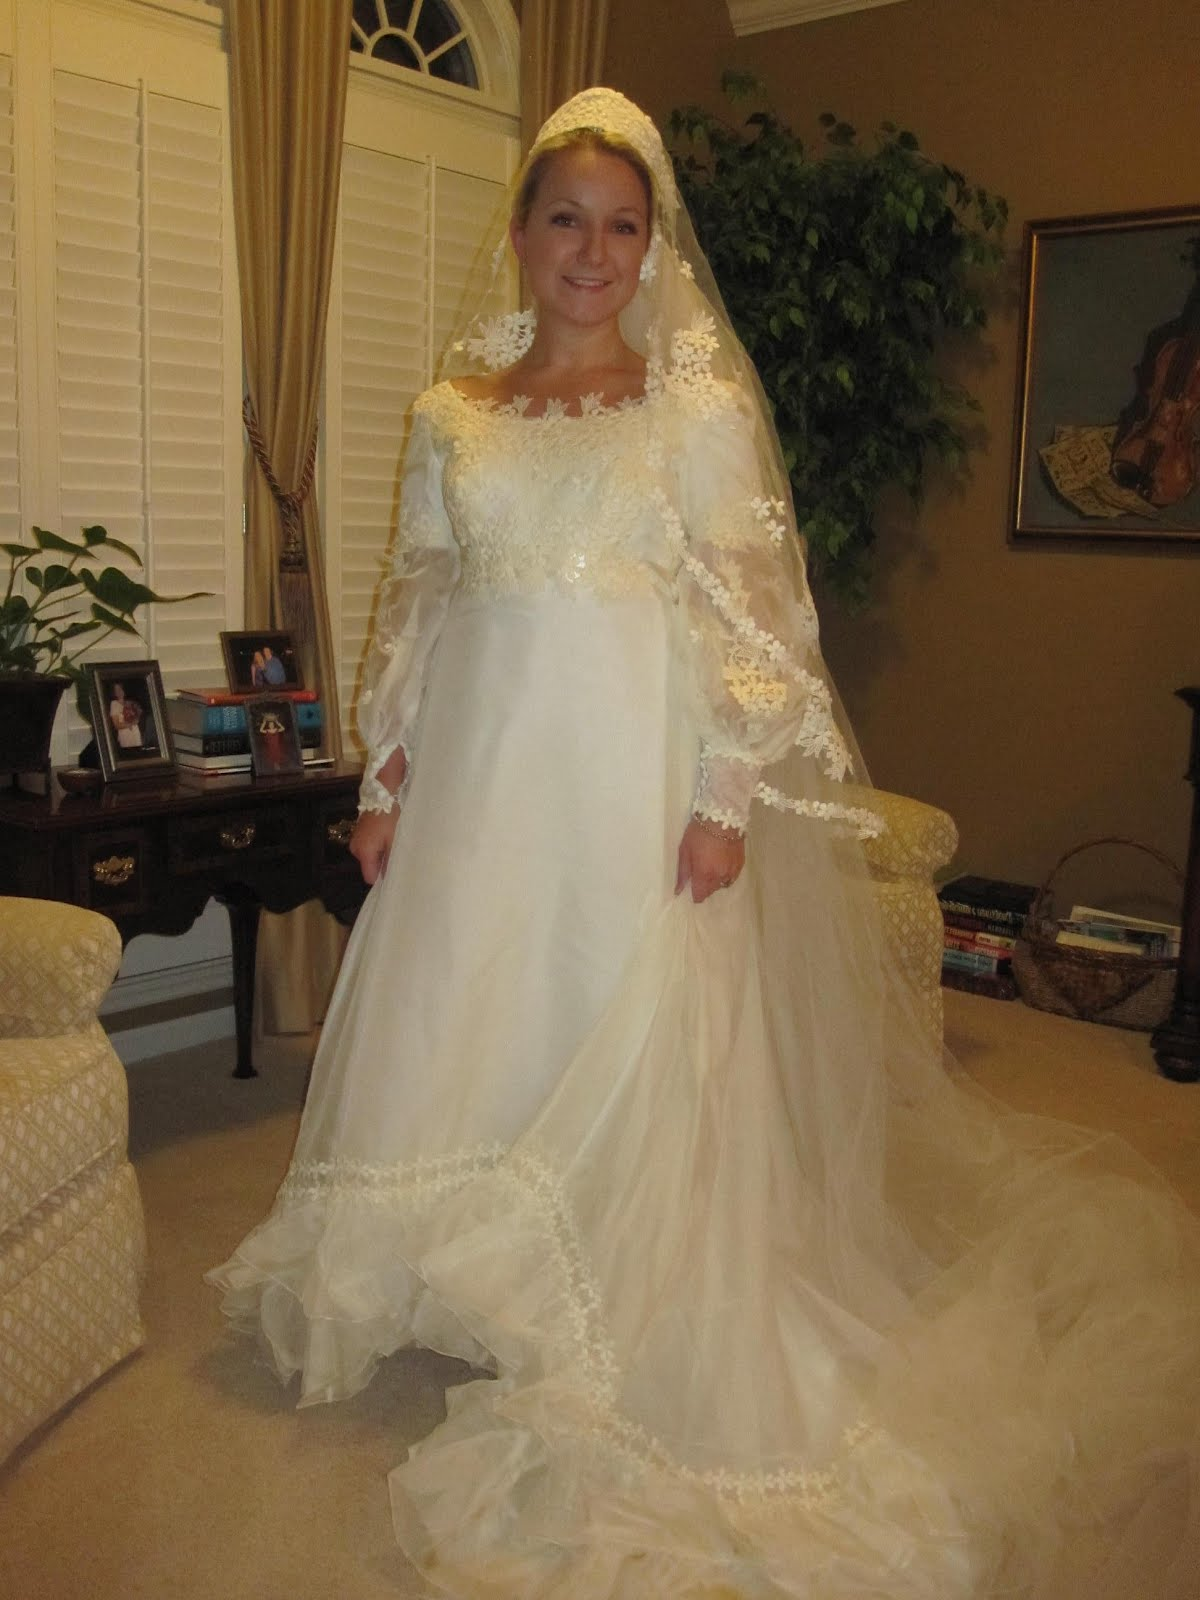 my mothers wedding dress mothers dress for wedding So since the dress was not going to work as my wedding dress I decided to wear my mom s veil on my wedding However it had a cap like crown that didn t